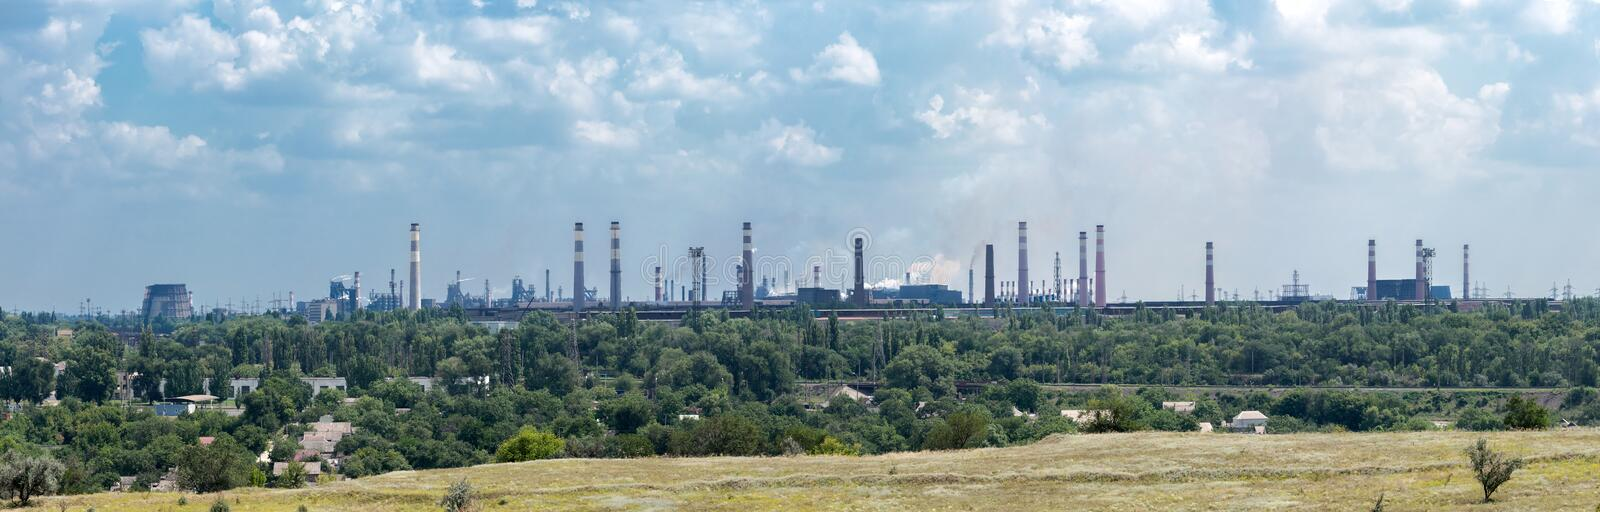 Metallurgical Plant stock images